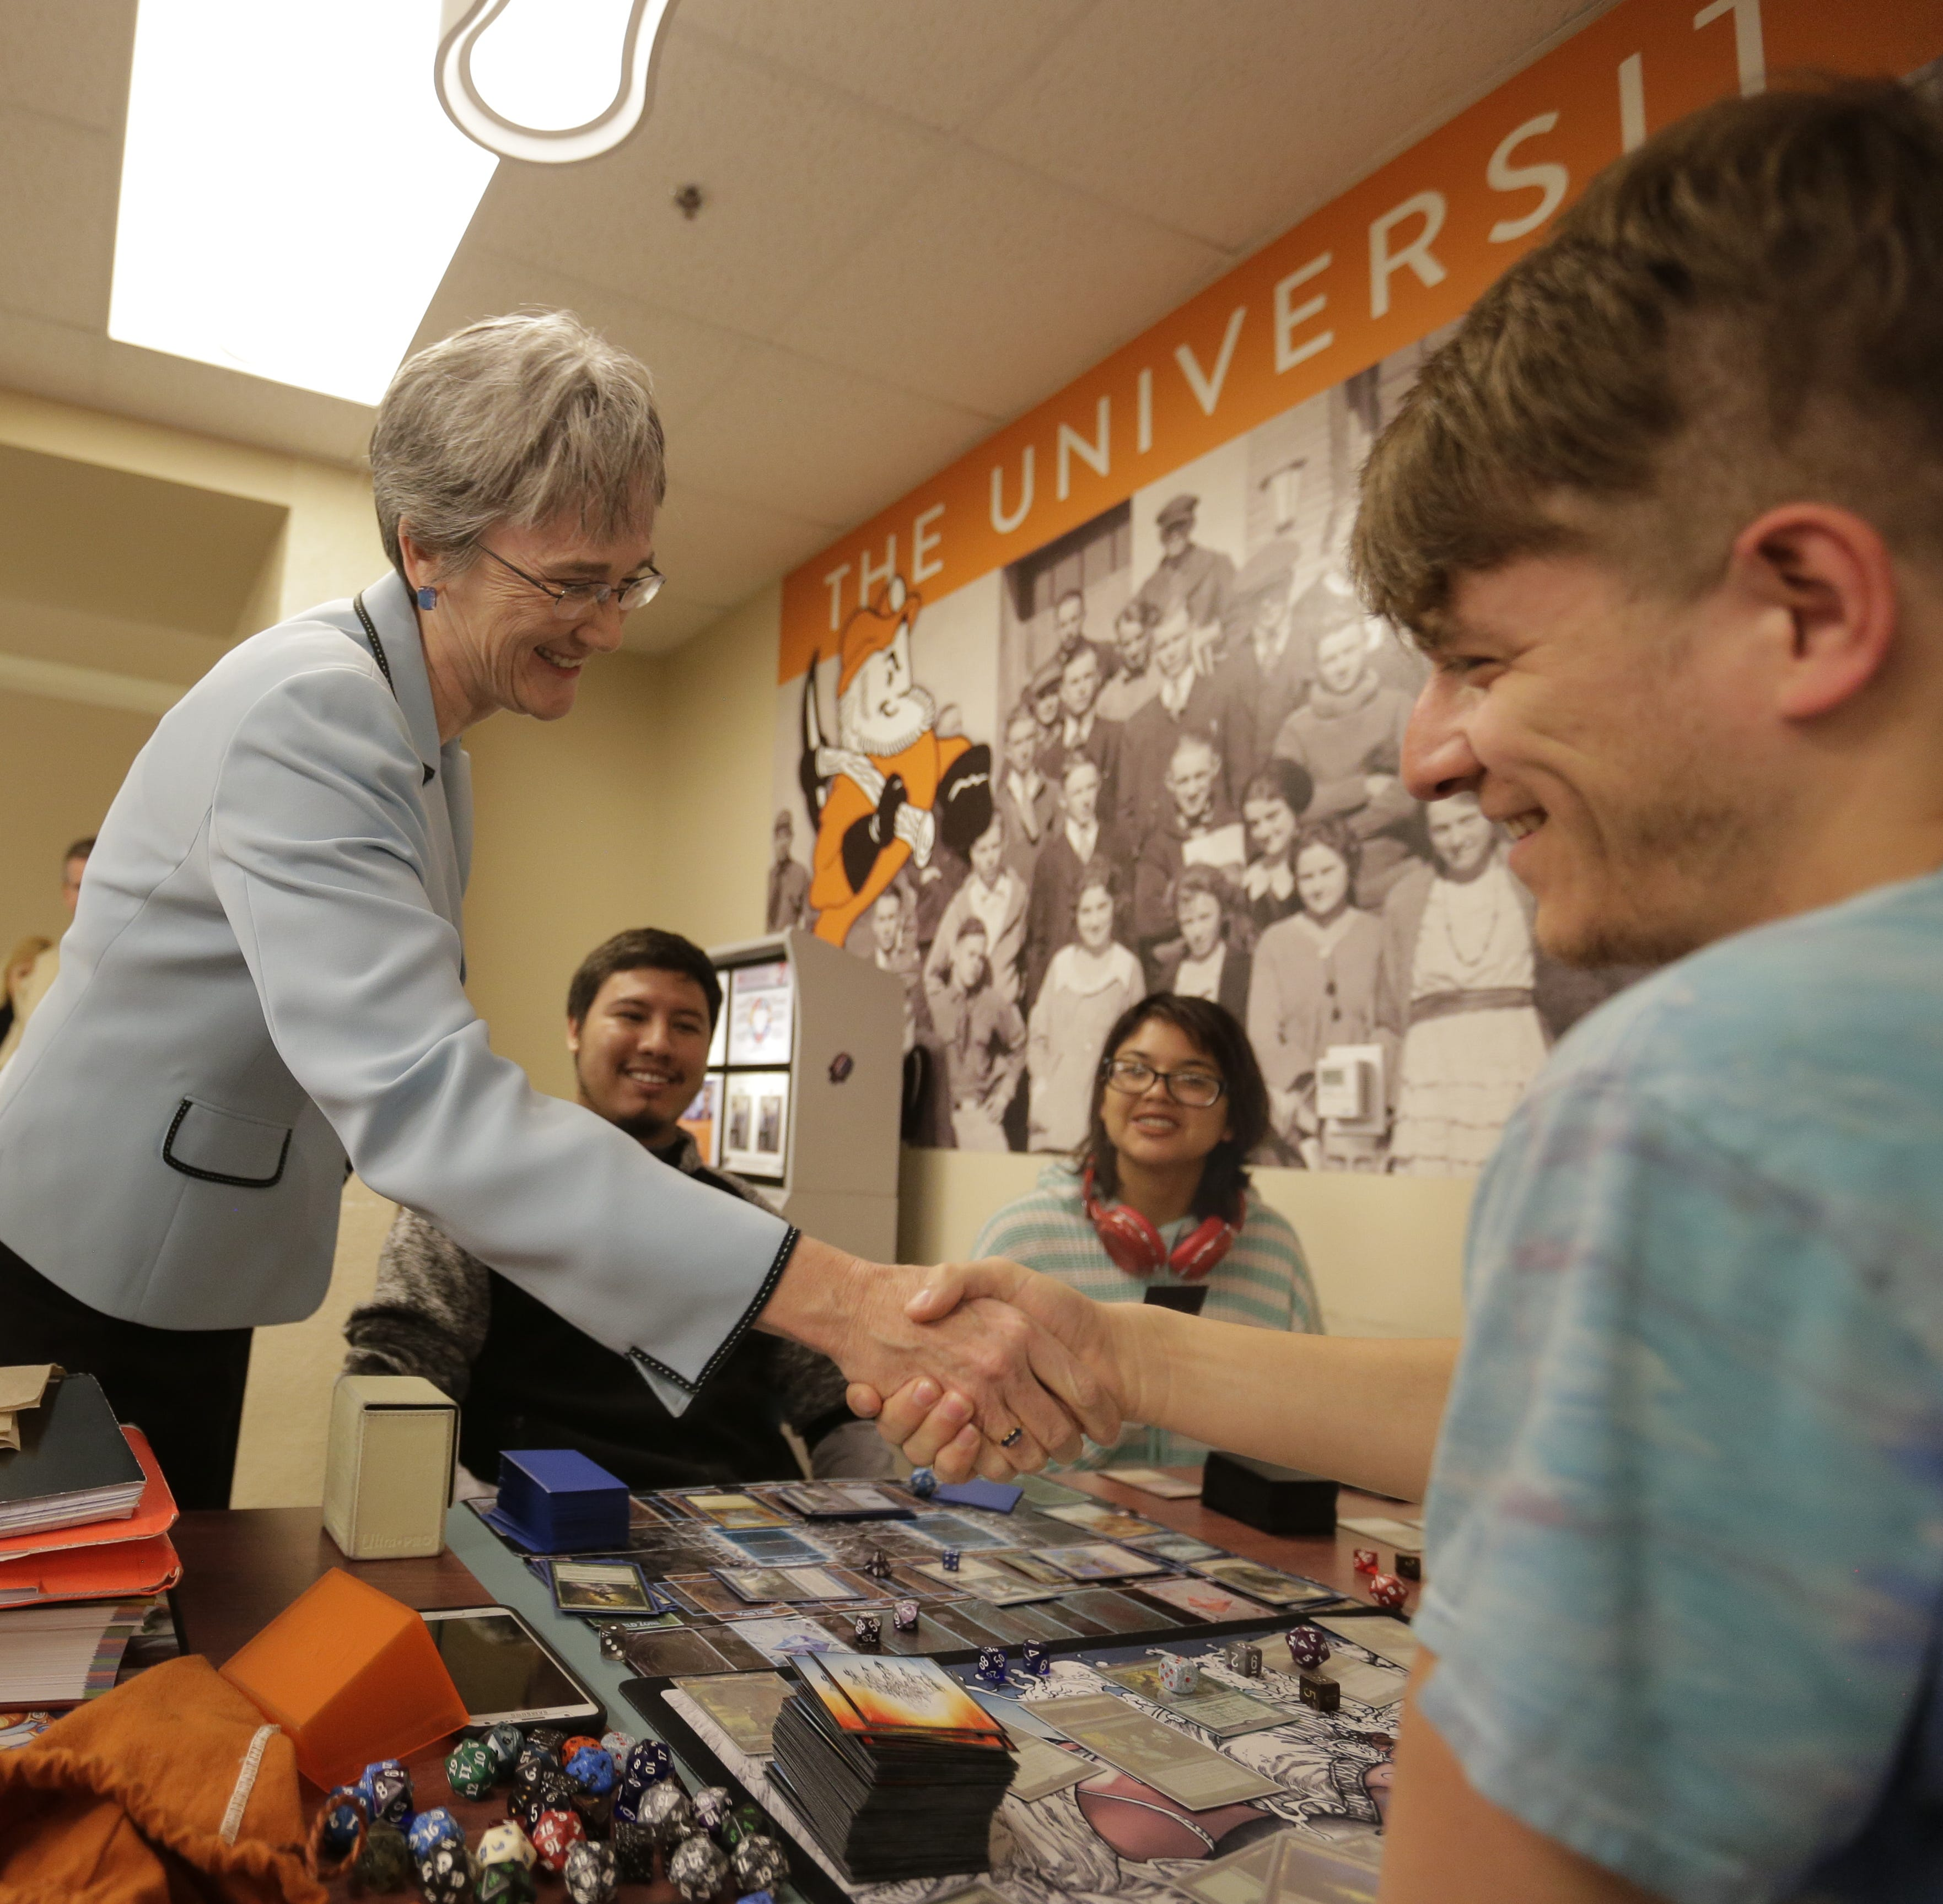 Heather Wilson visits UTEP to sell herself as the school's next president, draws protest